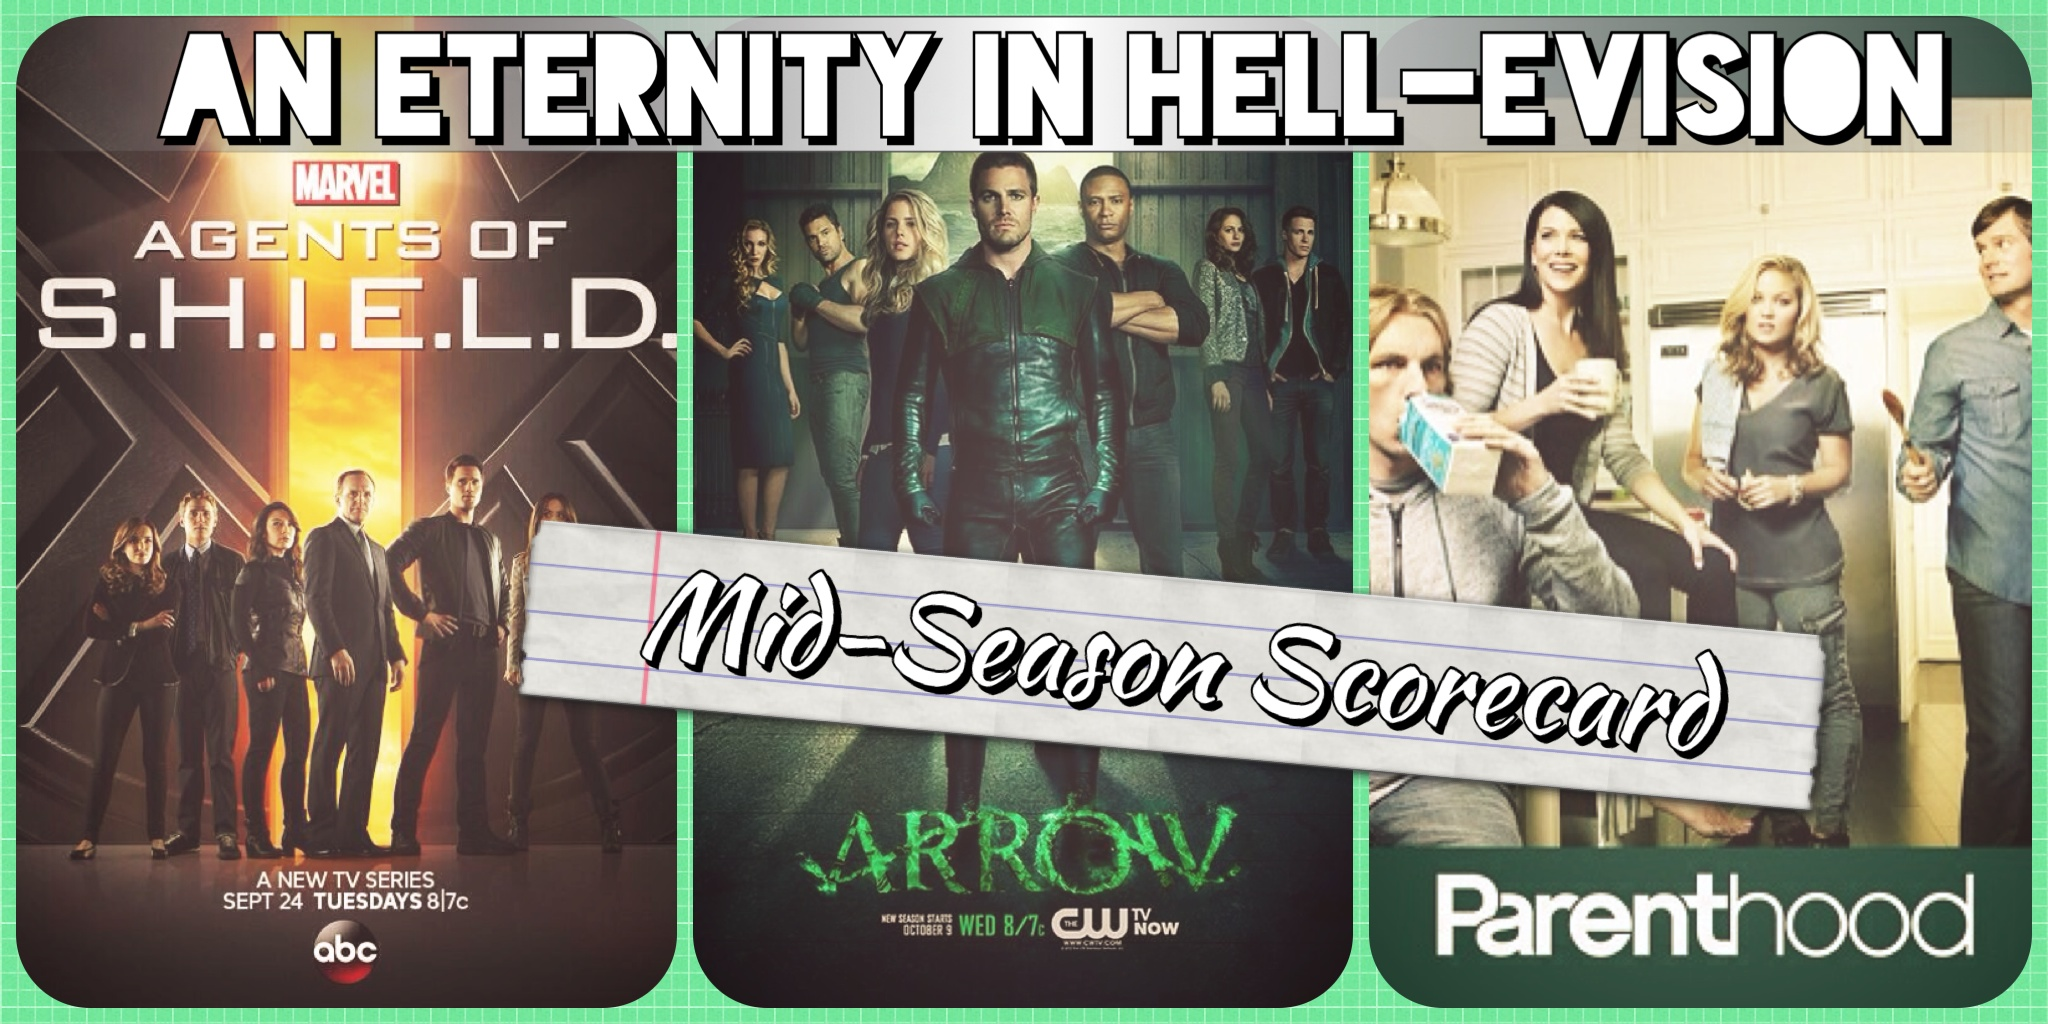 HELL-evision midseason finale premiere marvel's agents of SHIELD Arrow Parenthood ABC CW NBC